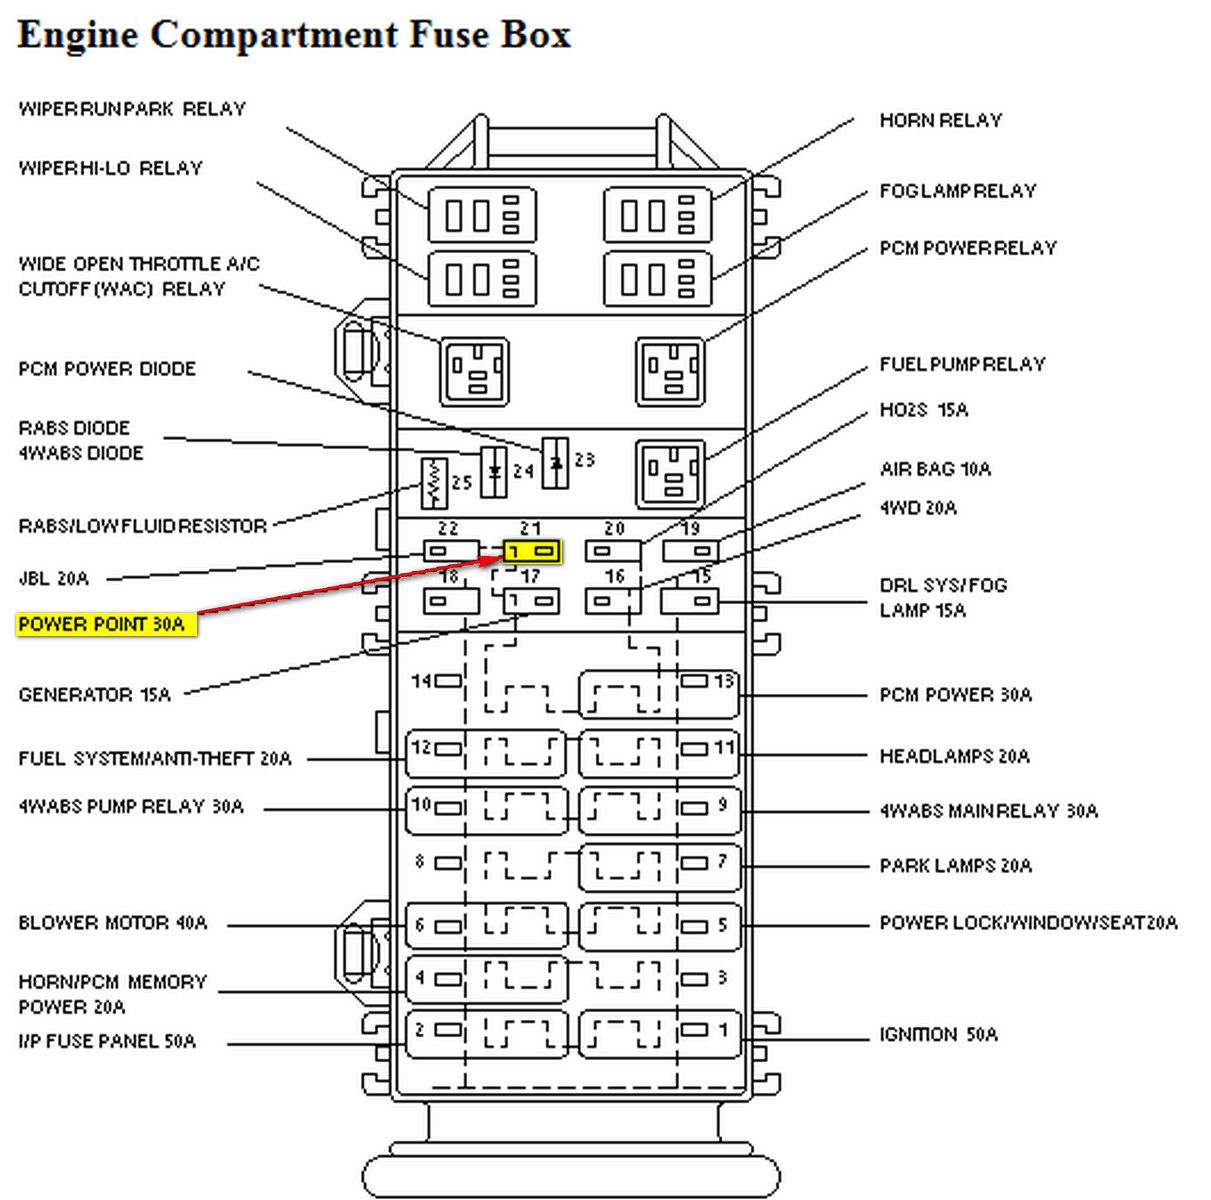 8a55967da7ae1bd251b795845886bd24 2002 ford ranger fuse diagram 1997 ford ranger fuse box diagram 2012 ford edge fuse box diagram at cita.asia